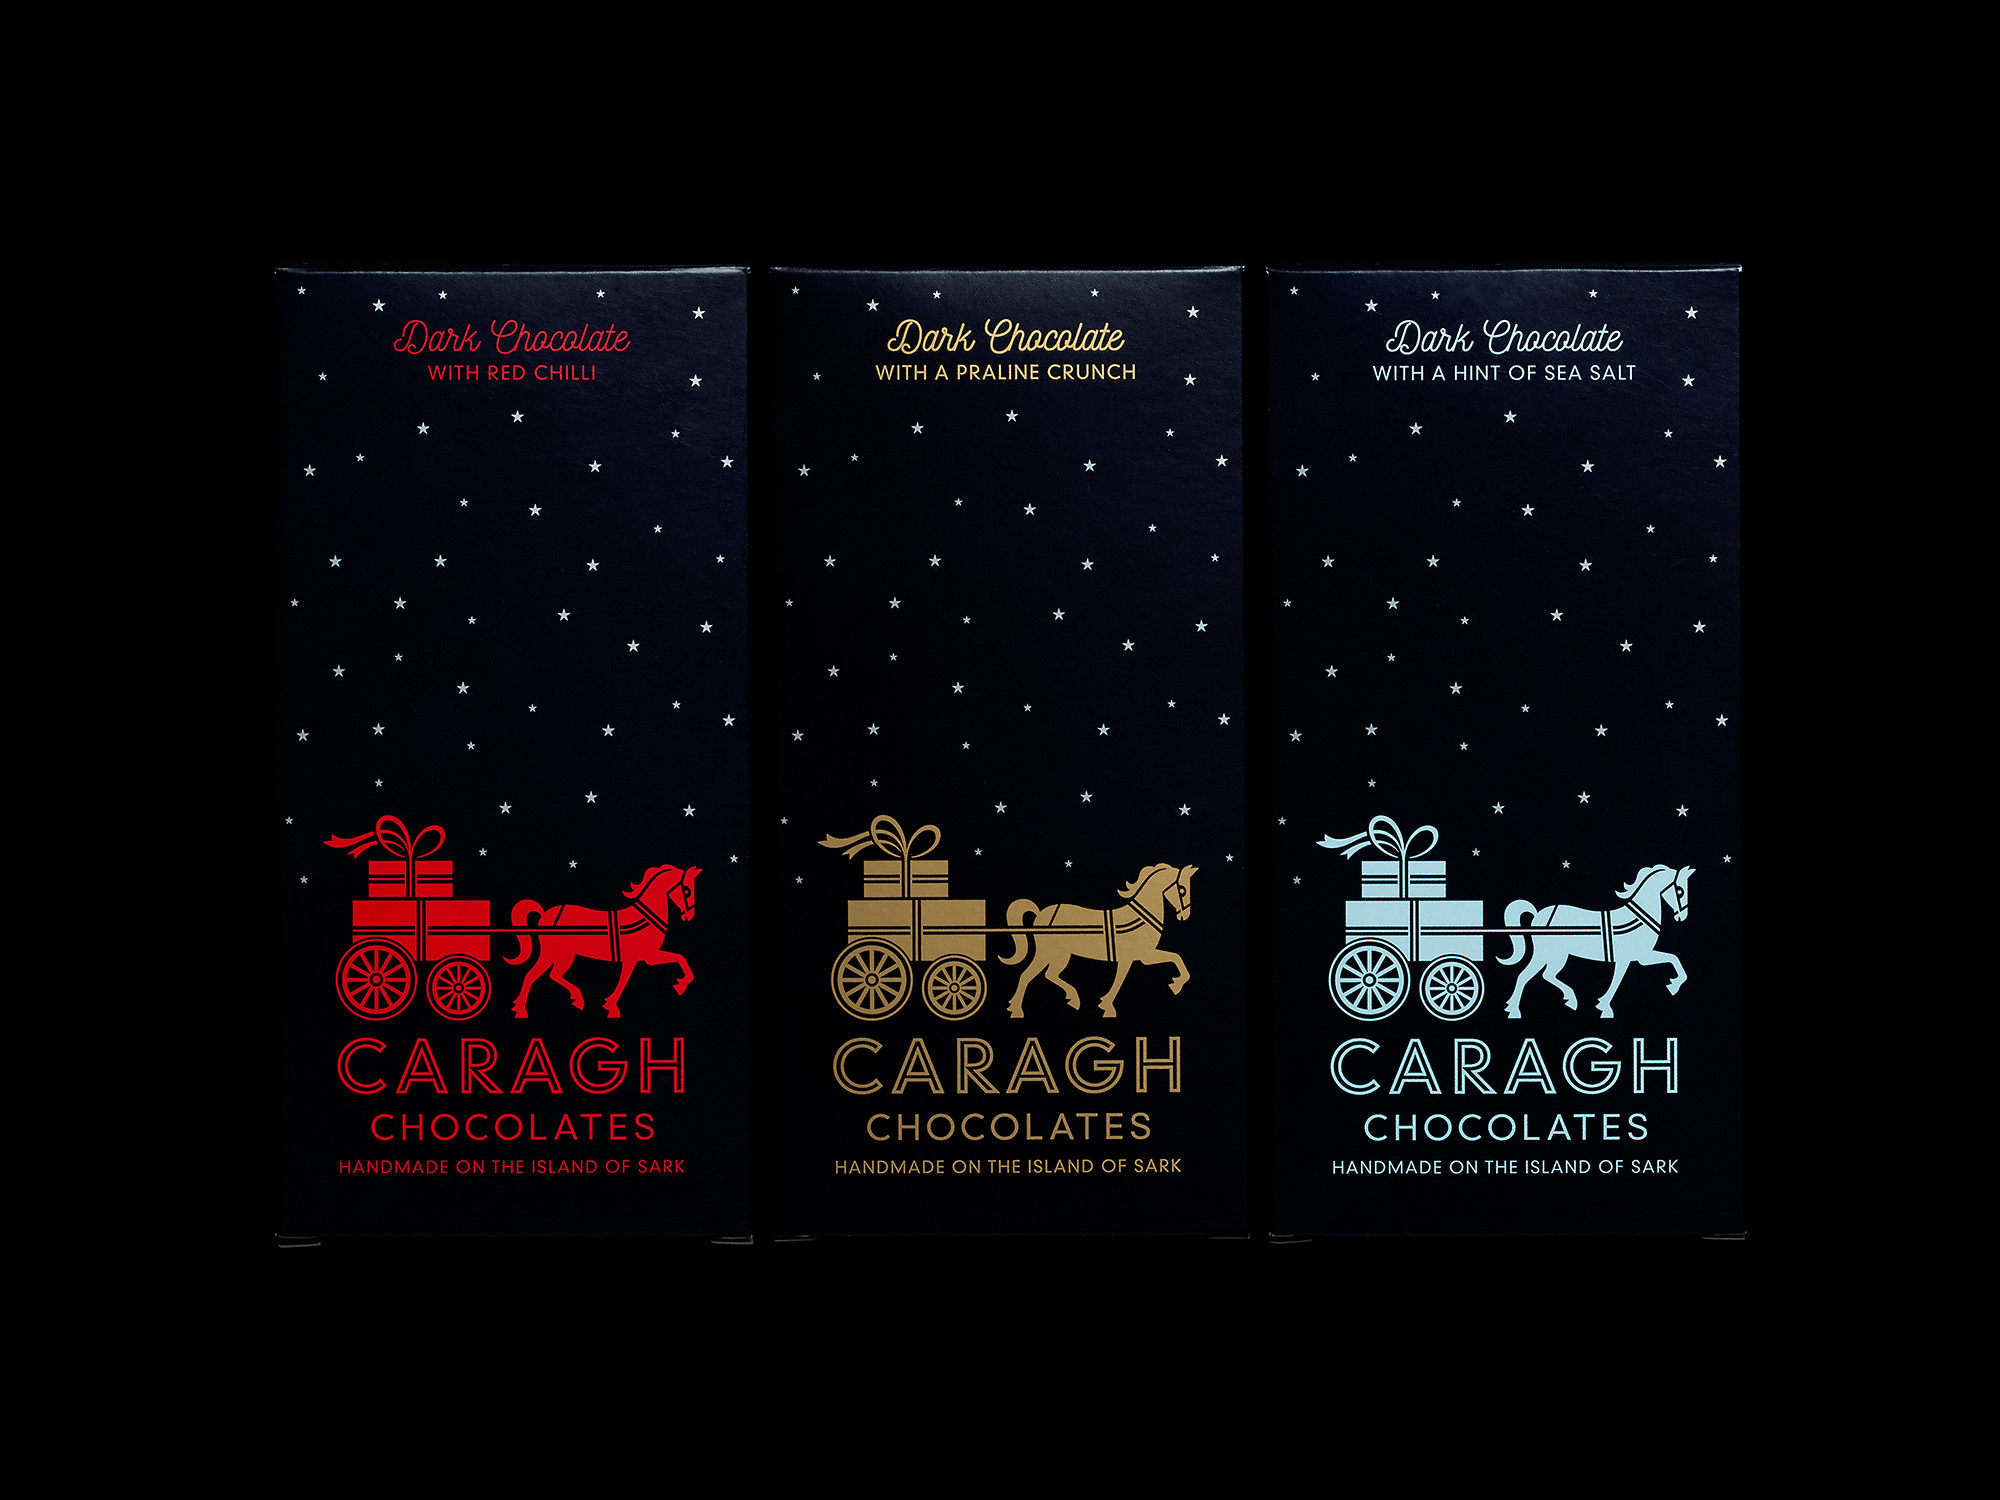 08_72dpi_caragh-chocolates-bars-on-black_3x-dark-skies